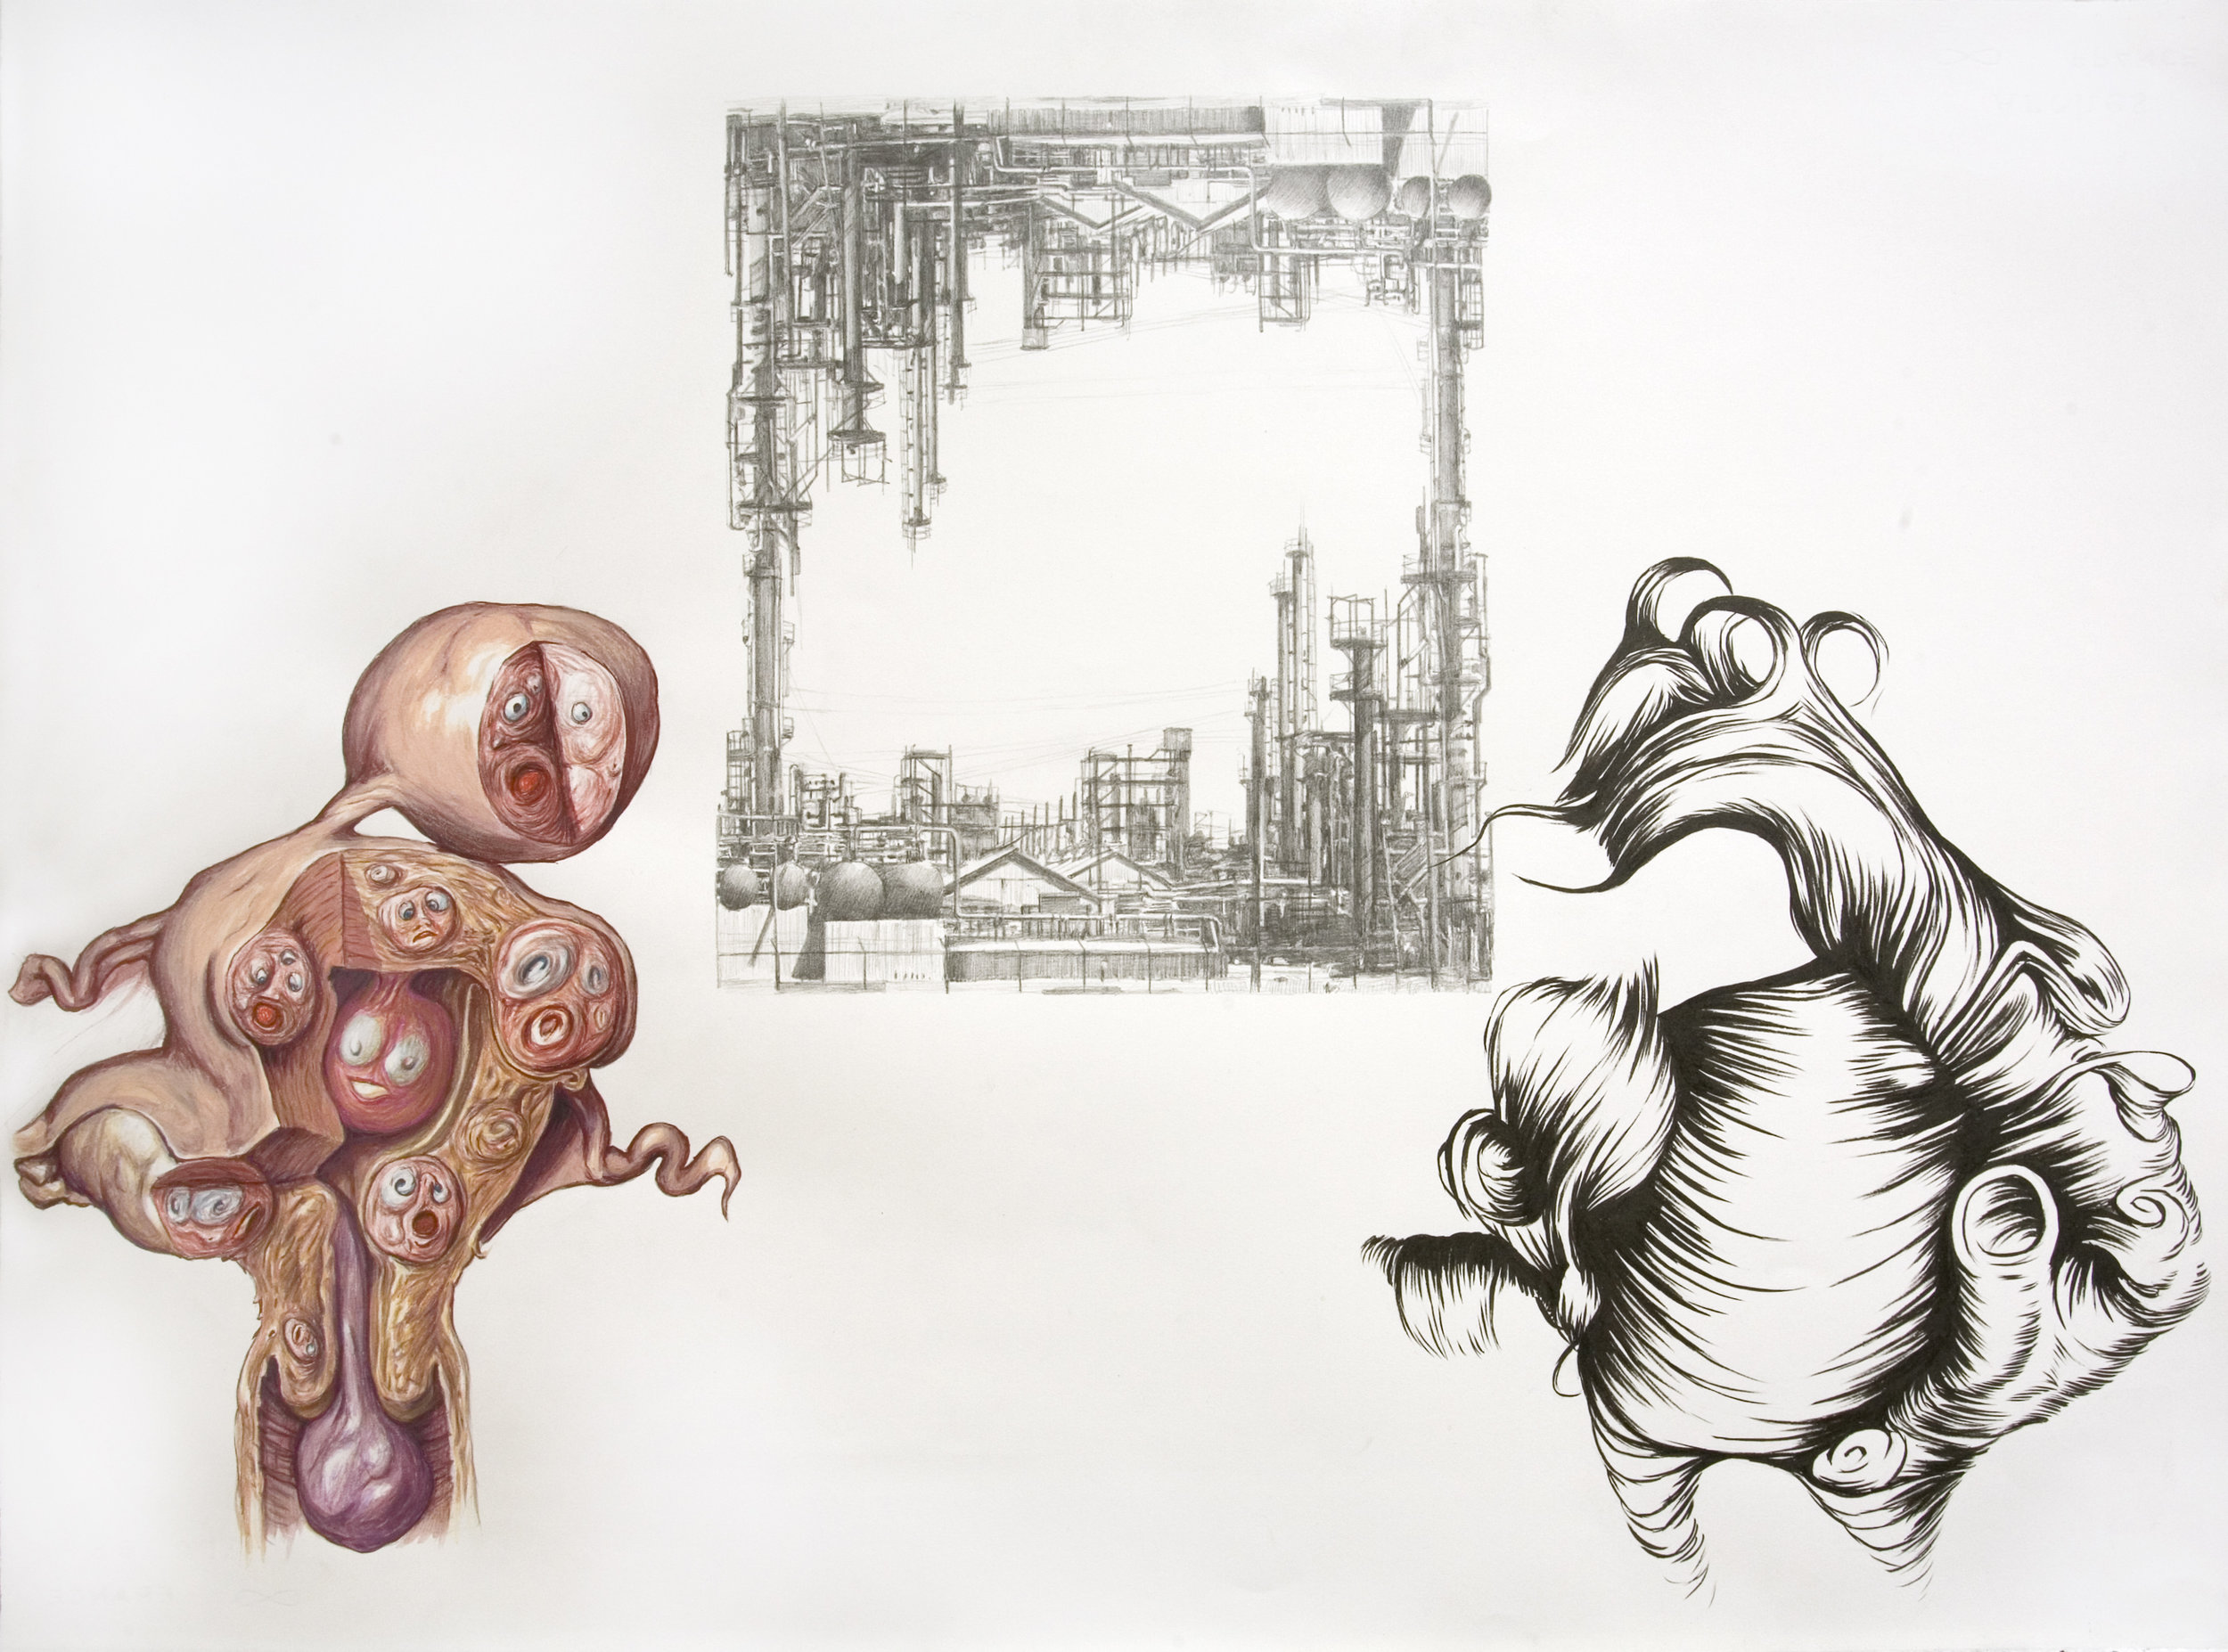 Anatomy Weird-ohs (Dow Chemical & Hair), 2011 gouache, pencil and watercolor on paper 57,2 x 76,8 cm - 22 1/2 x 30 1/4 inches